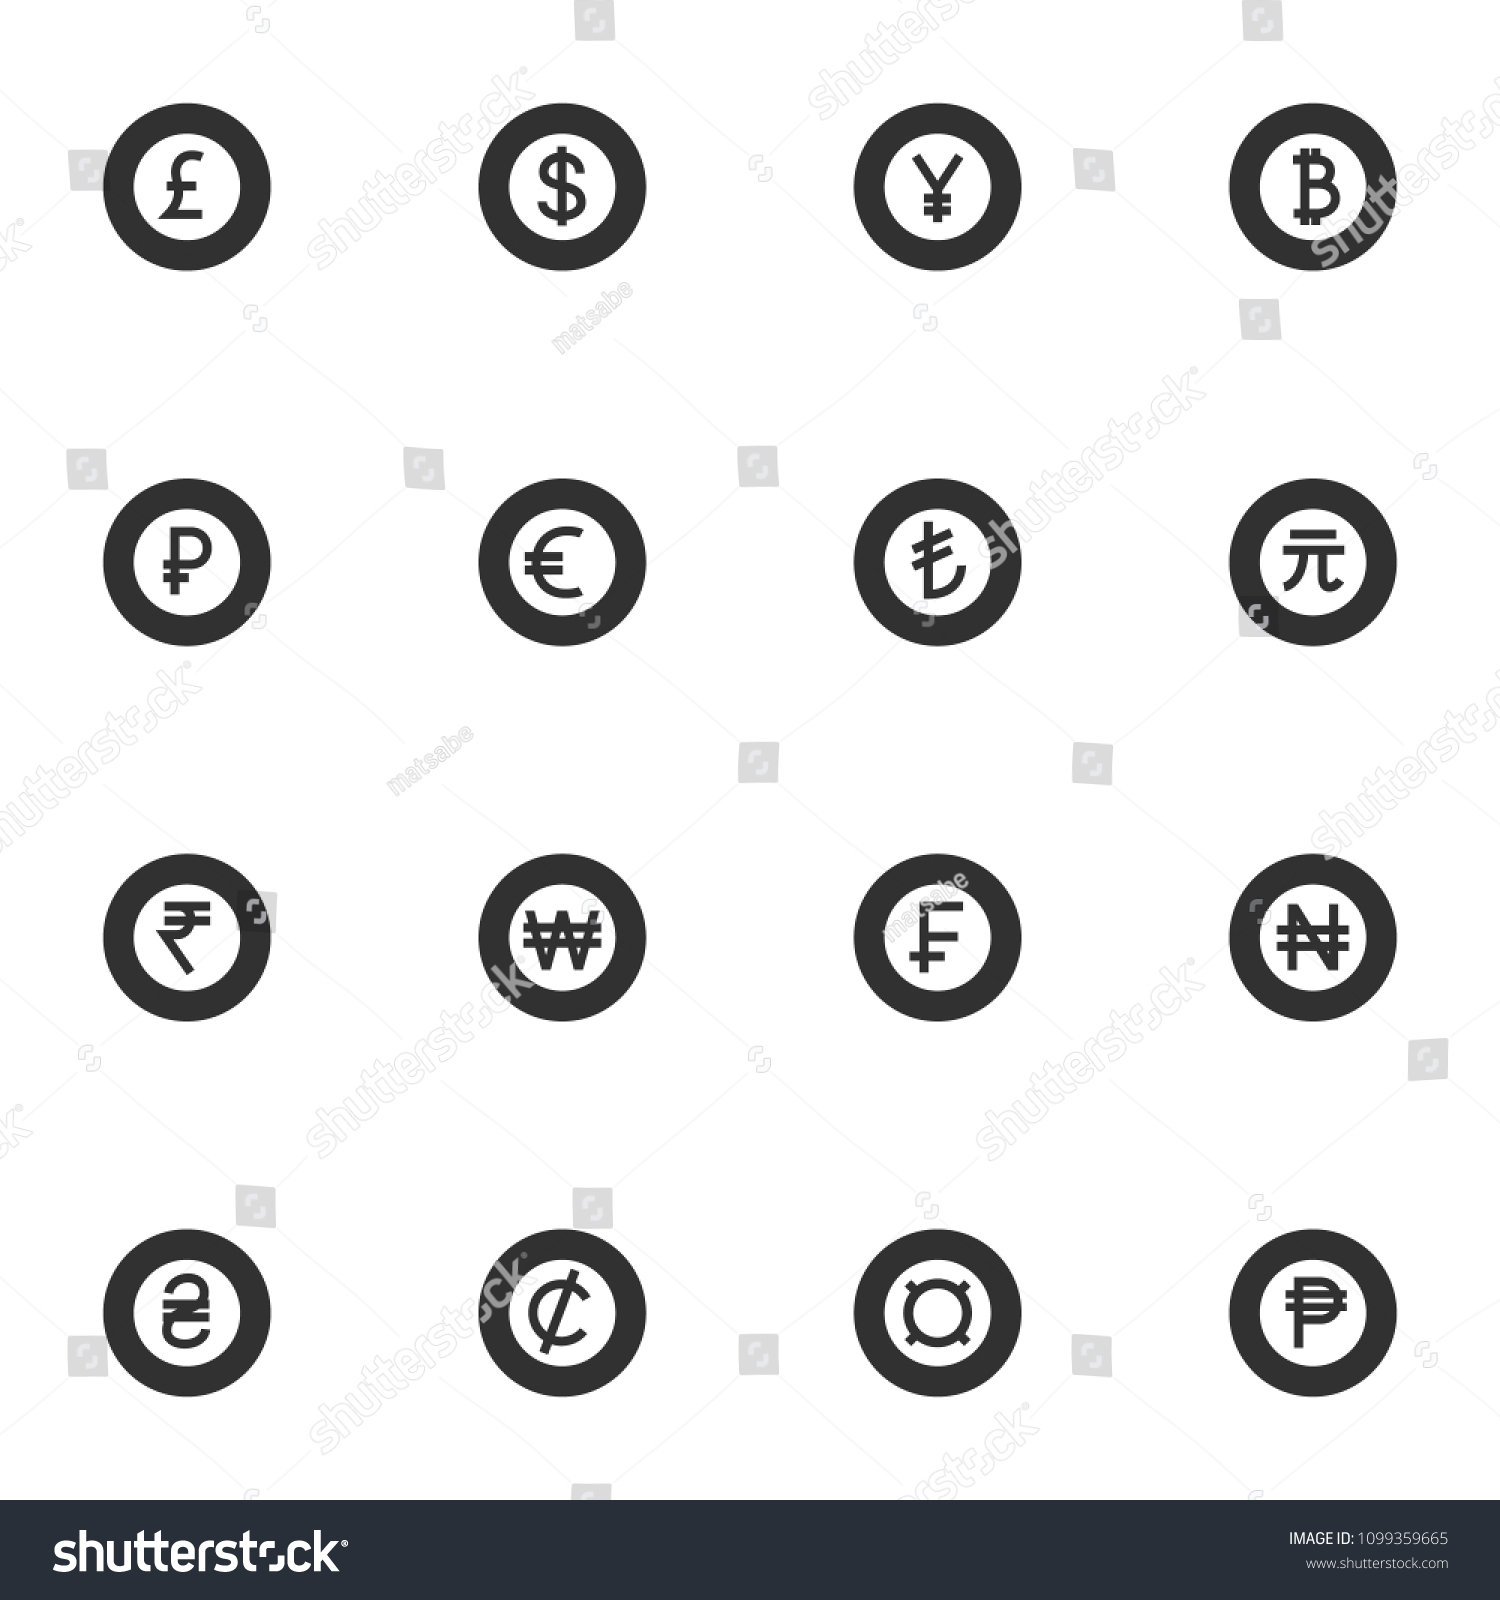 World Currency Monochrome Icons Set Money Stock Vector 1099359665